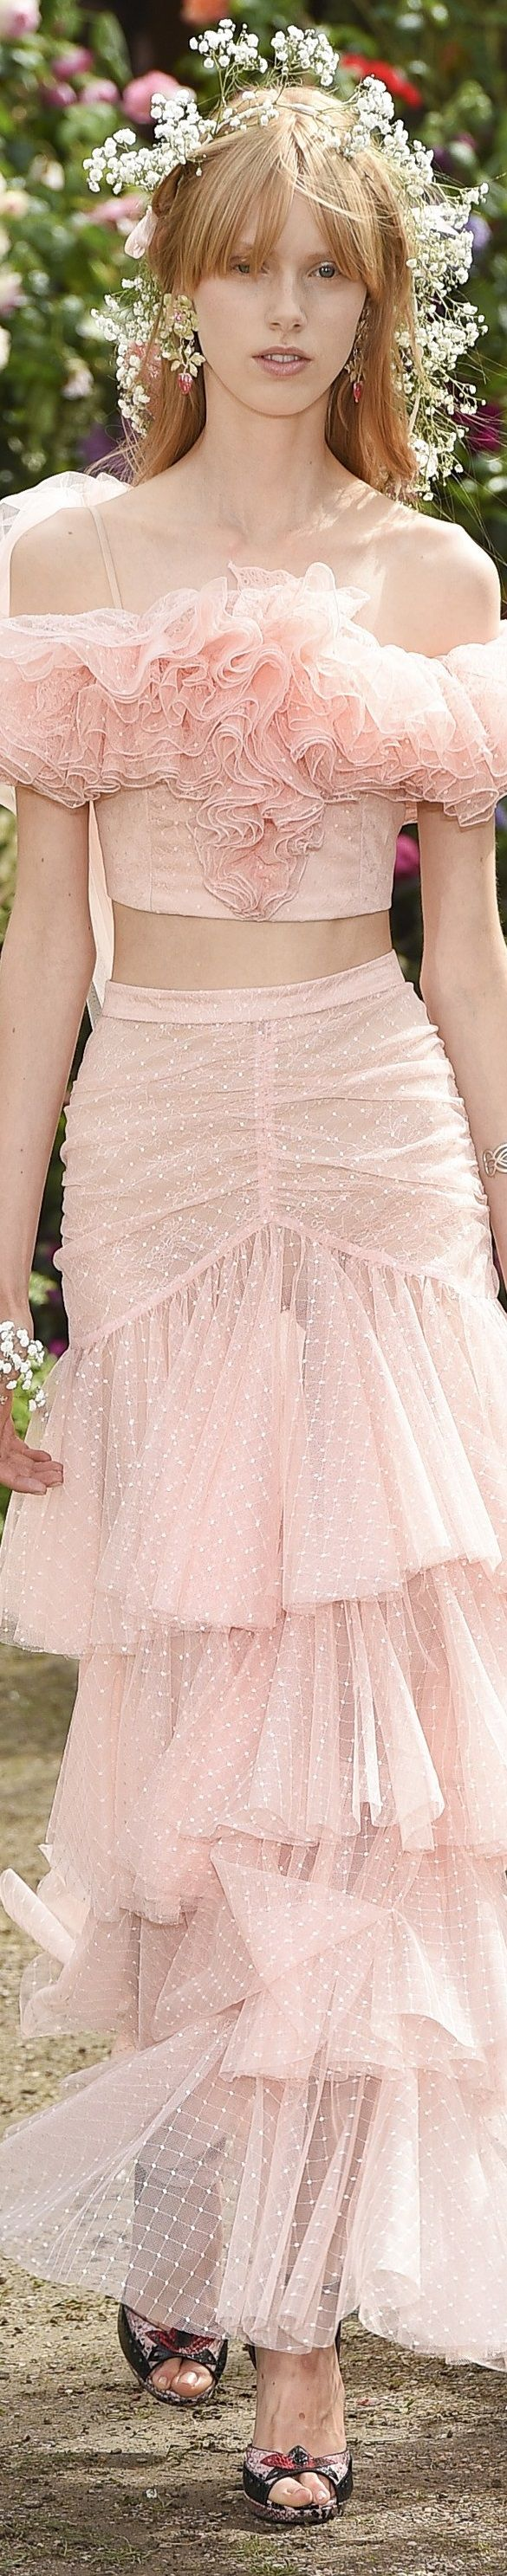 don't love the amount of ruffle up top but really like the skirt(Rodarte)